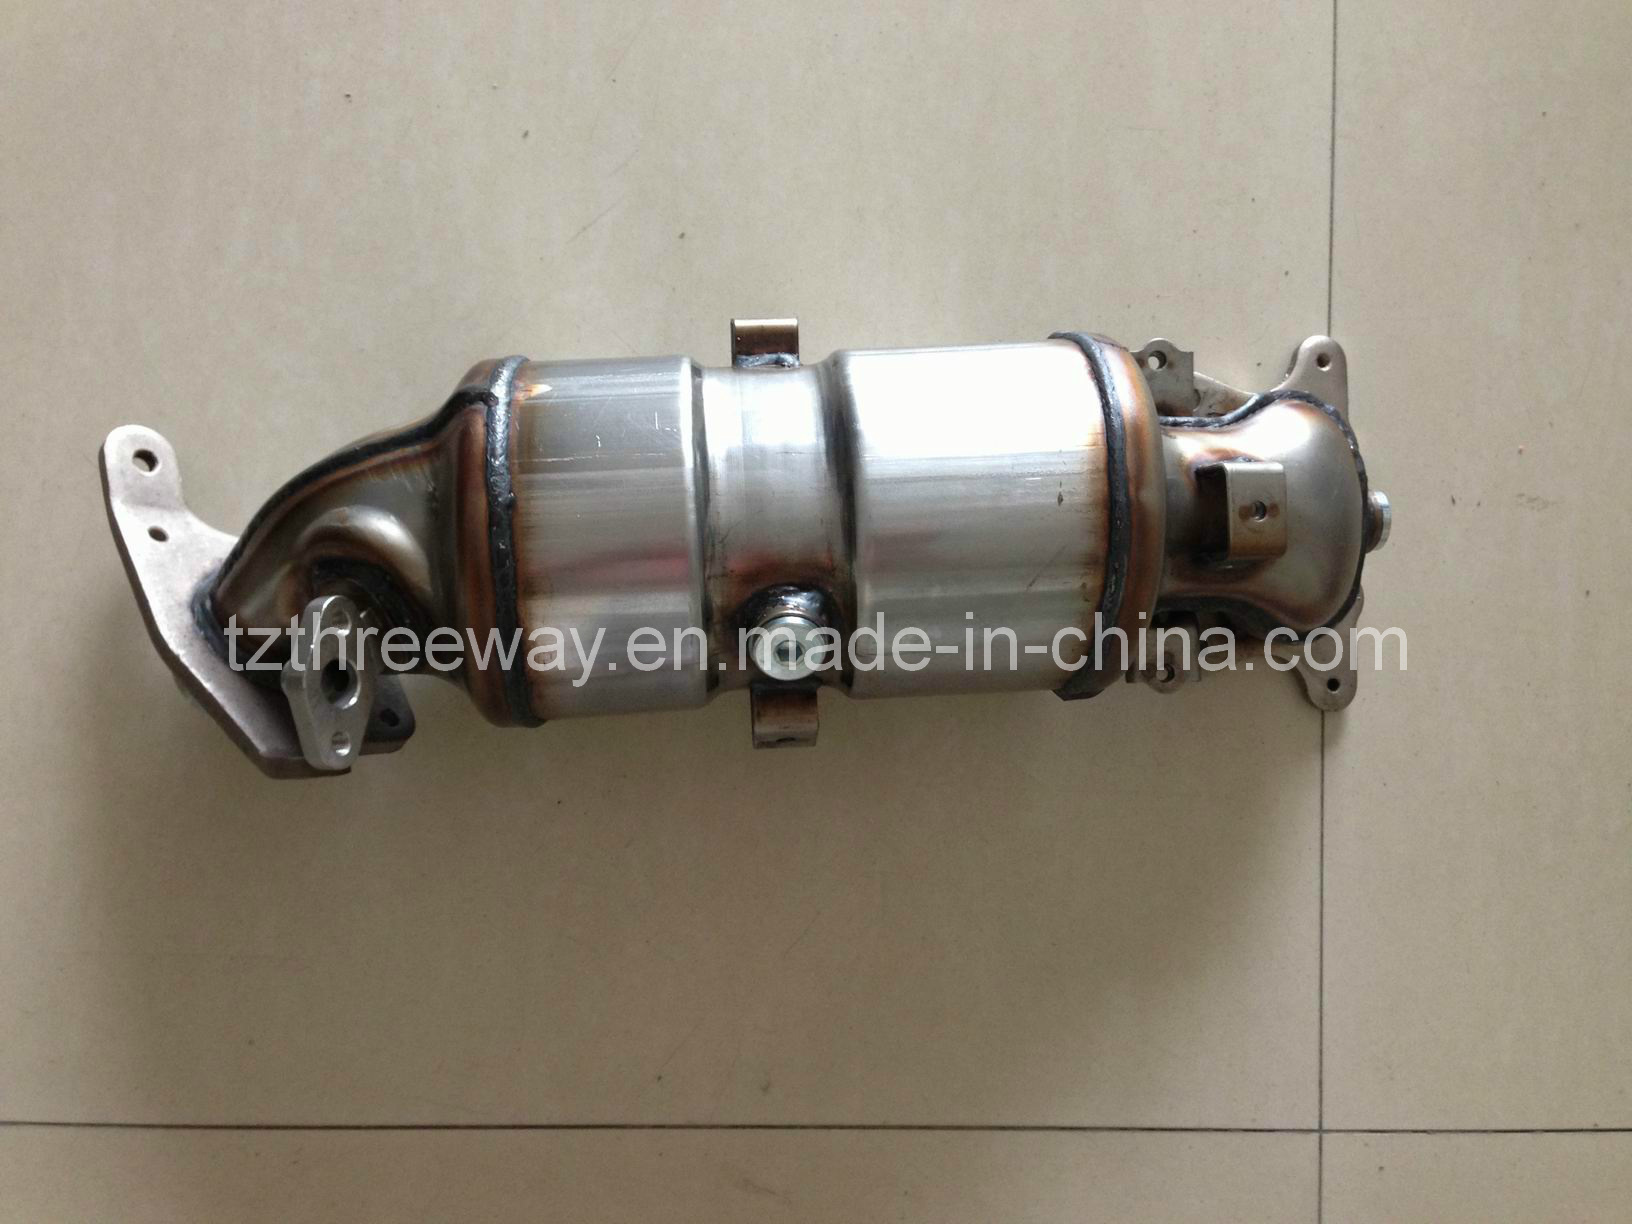 Direct-Fit Catalytic Converter Suitable for Honda Civic Emission Euro4 OBD